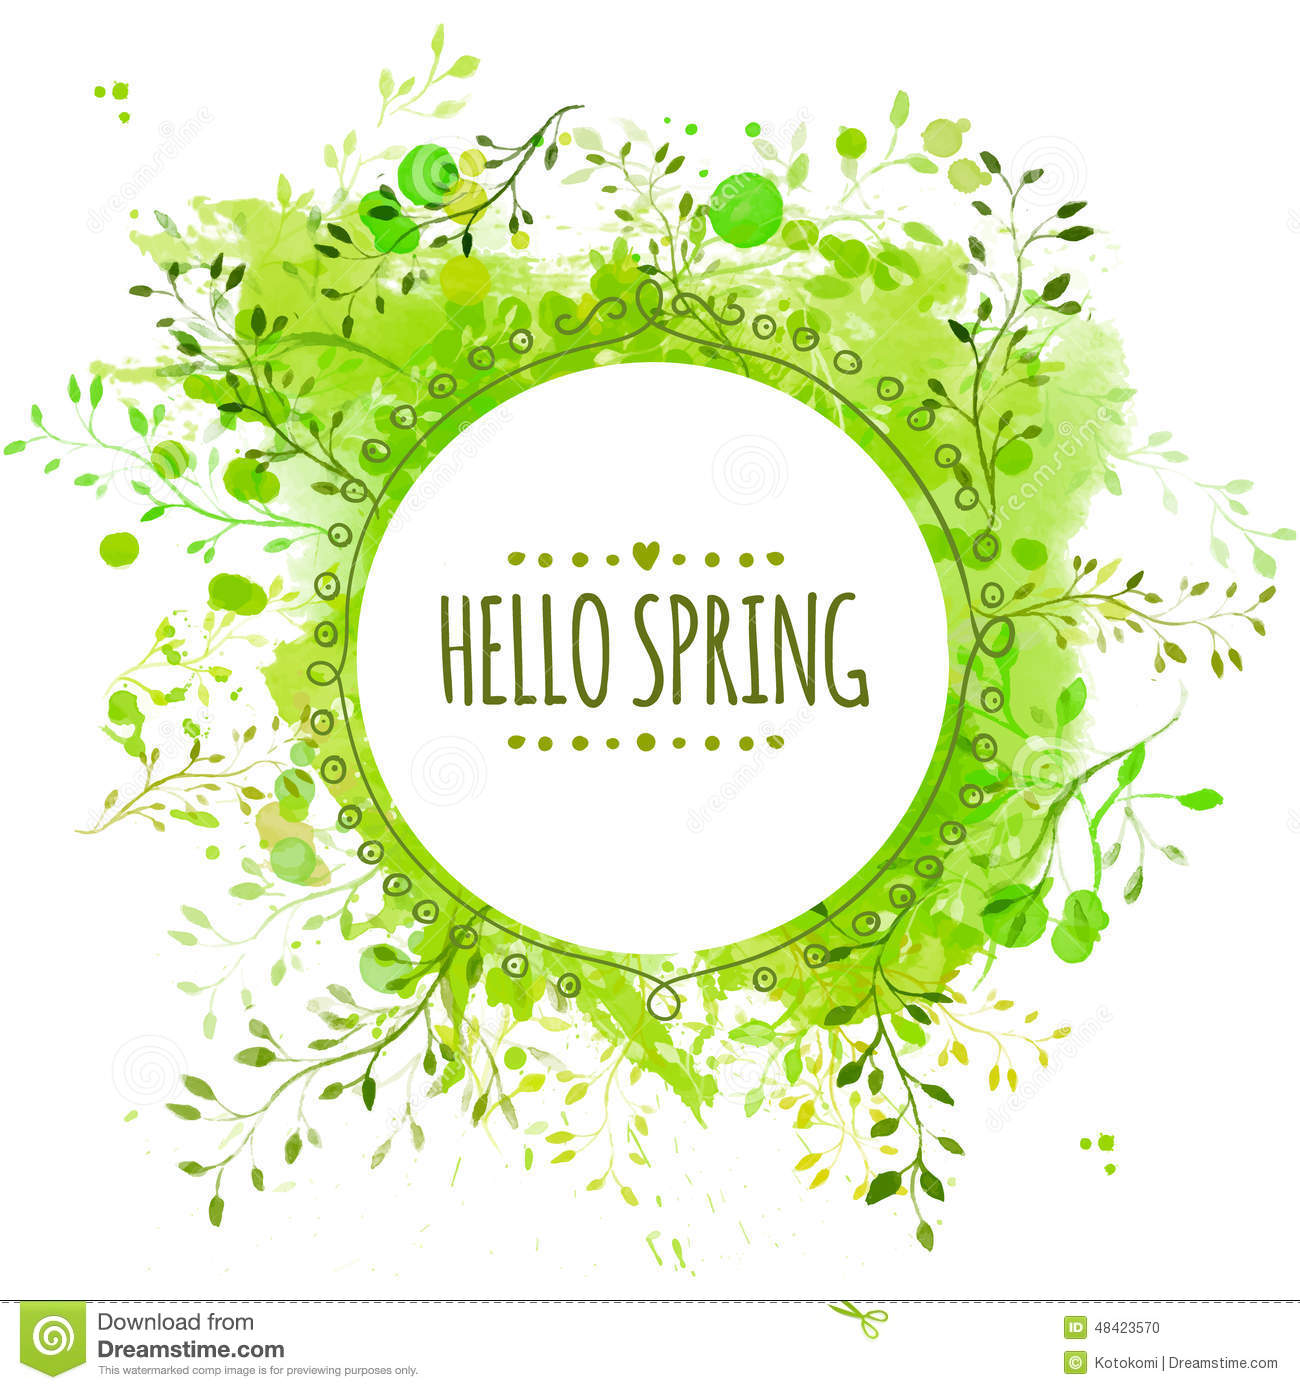 white doodle circle frame with text hello spring green paint splash